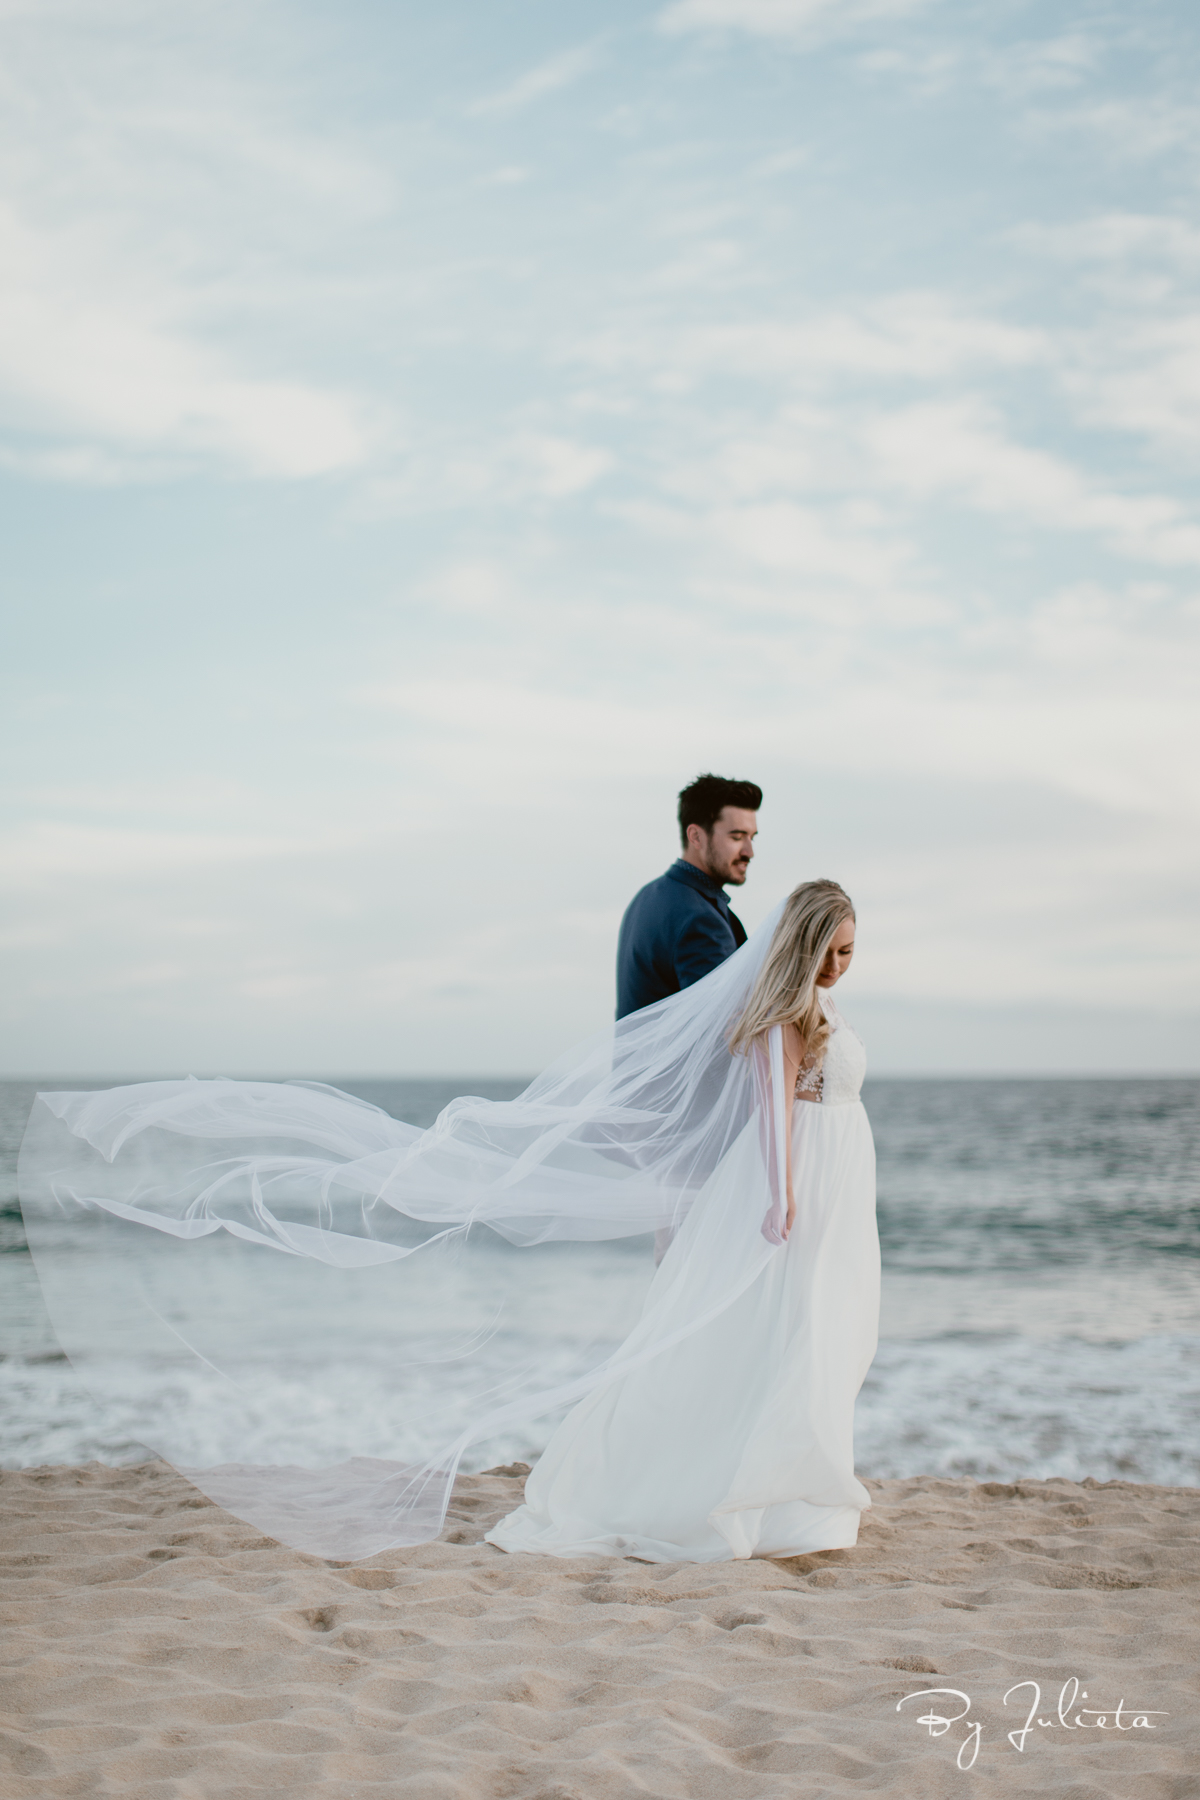 Los Cabos Beach Wedding Hyatt. K+G. Julieta Amezcua Photography. (392 of 525).jpg